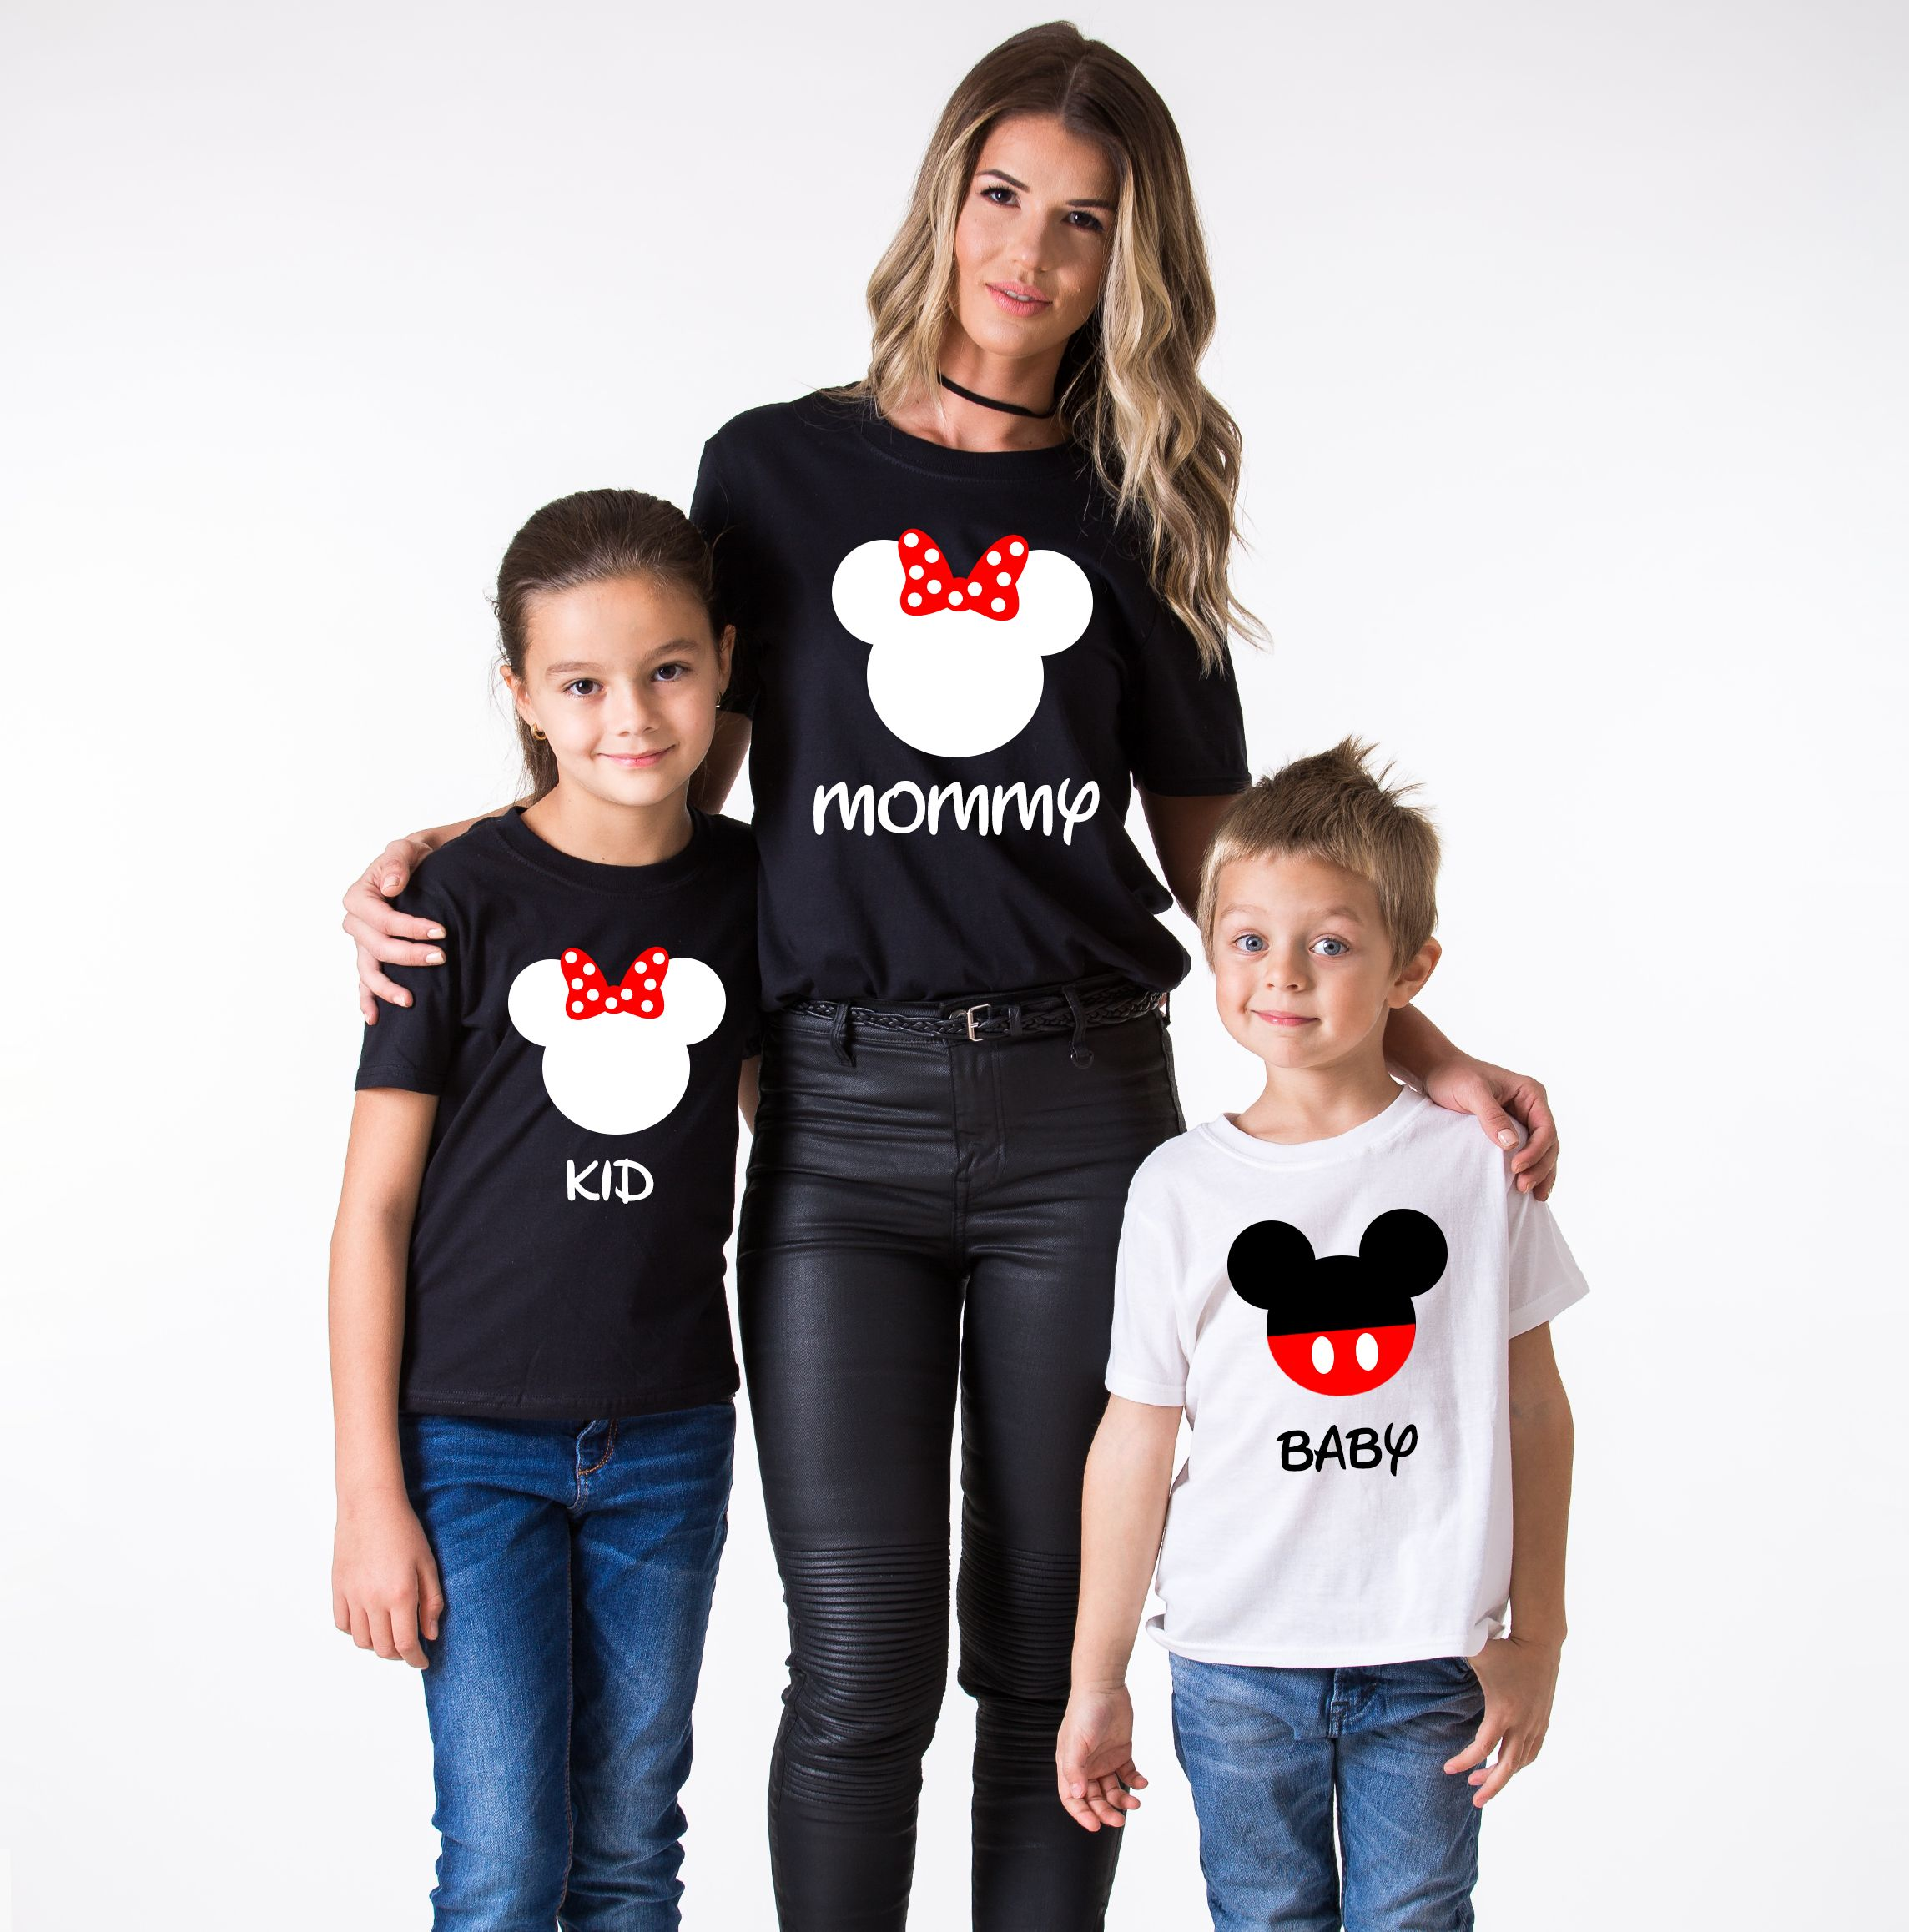 e484deaa9 Mouse Family Shirts, Mommy, Daddy, Kid, Matching Shirts